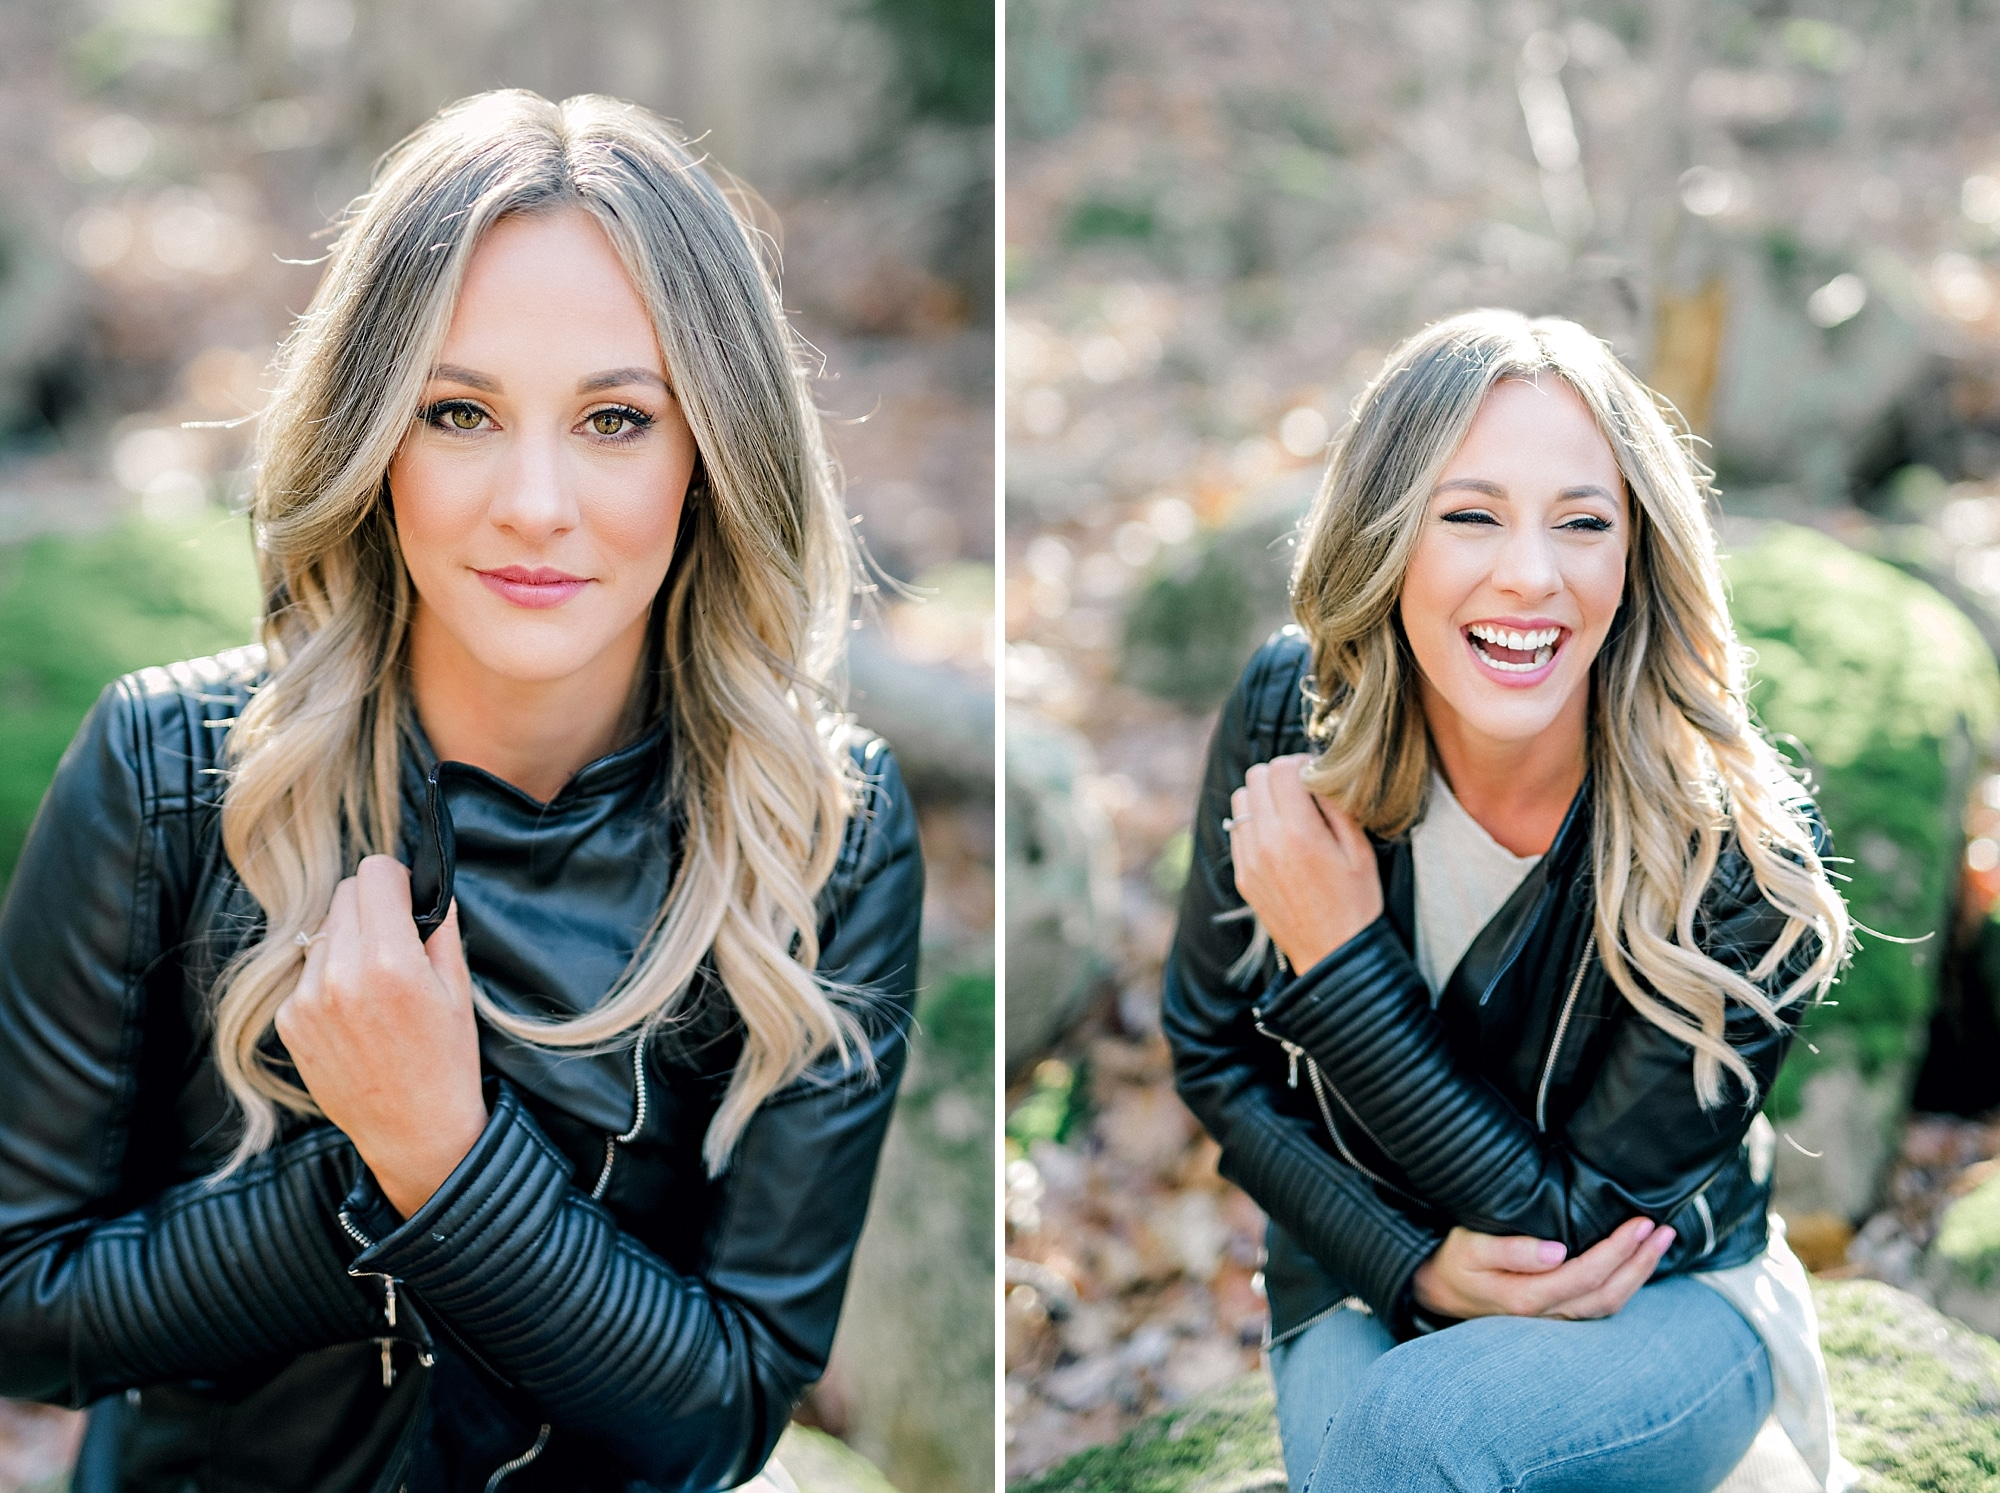 laughing smiling girl during headshots wearing leather jacket